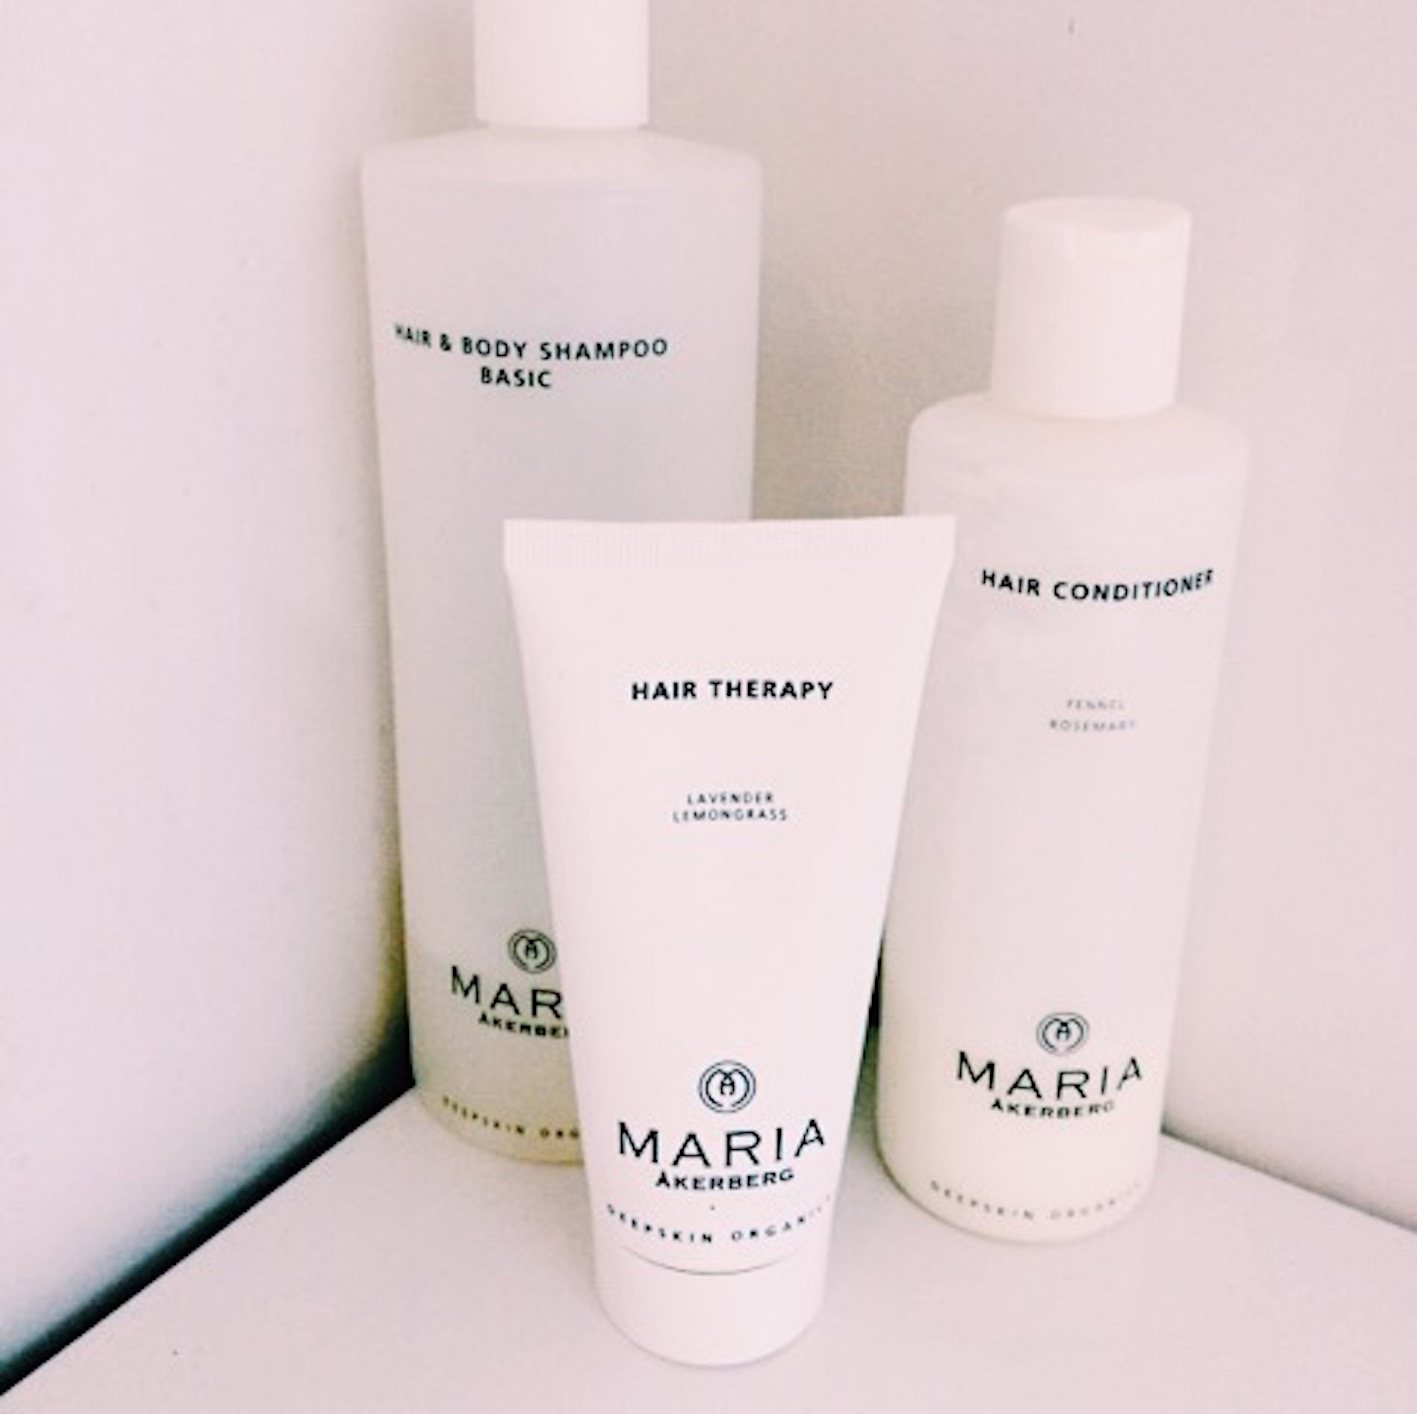 Hair Therapy - Maria Åkerberg